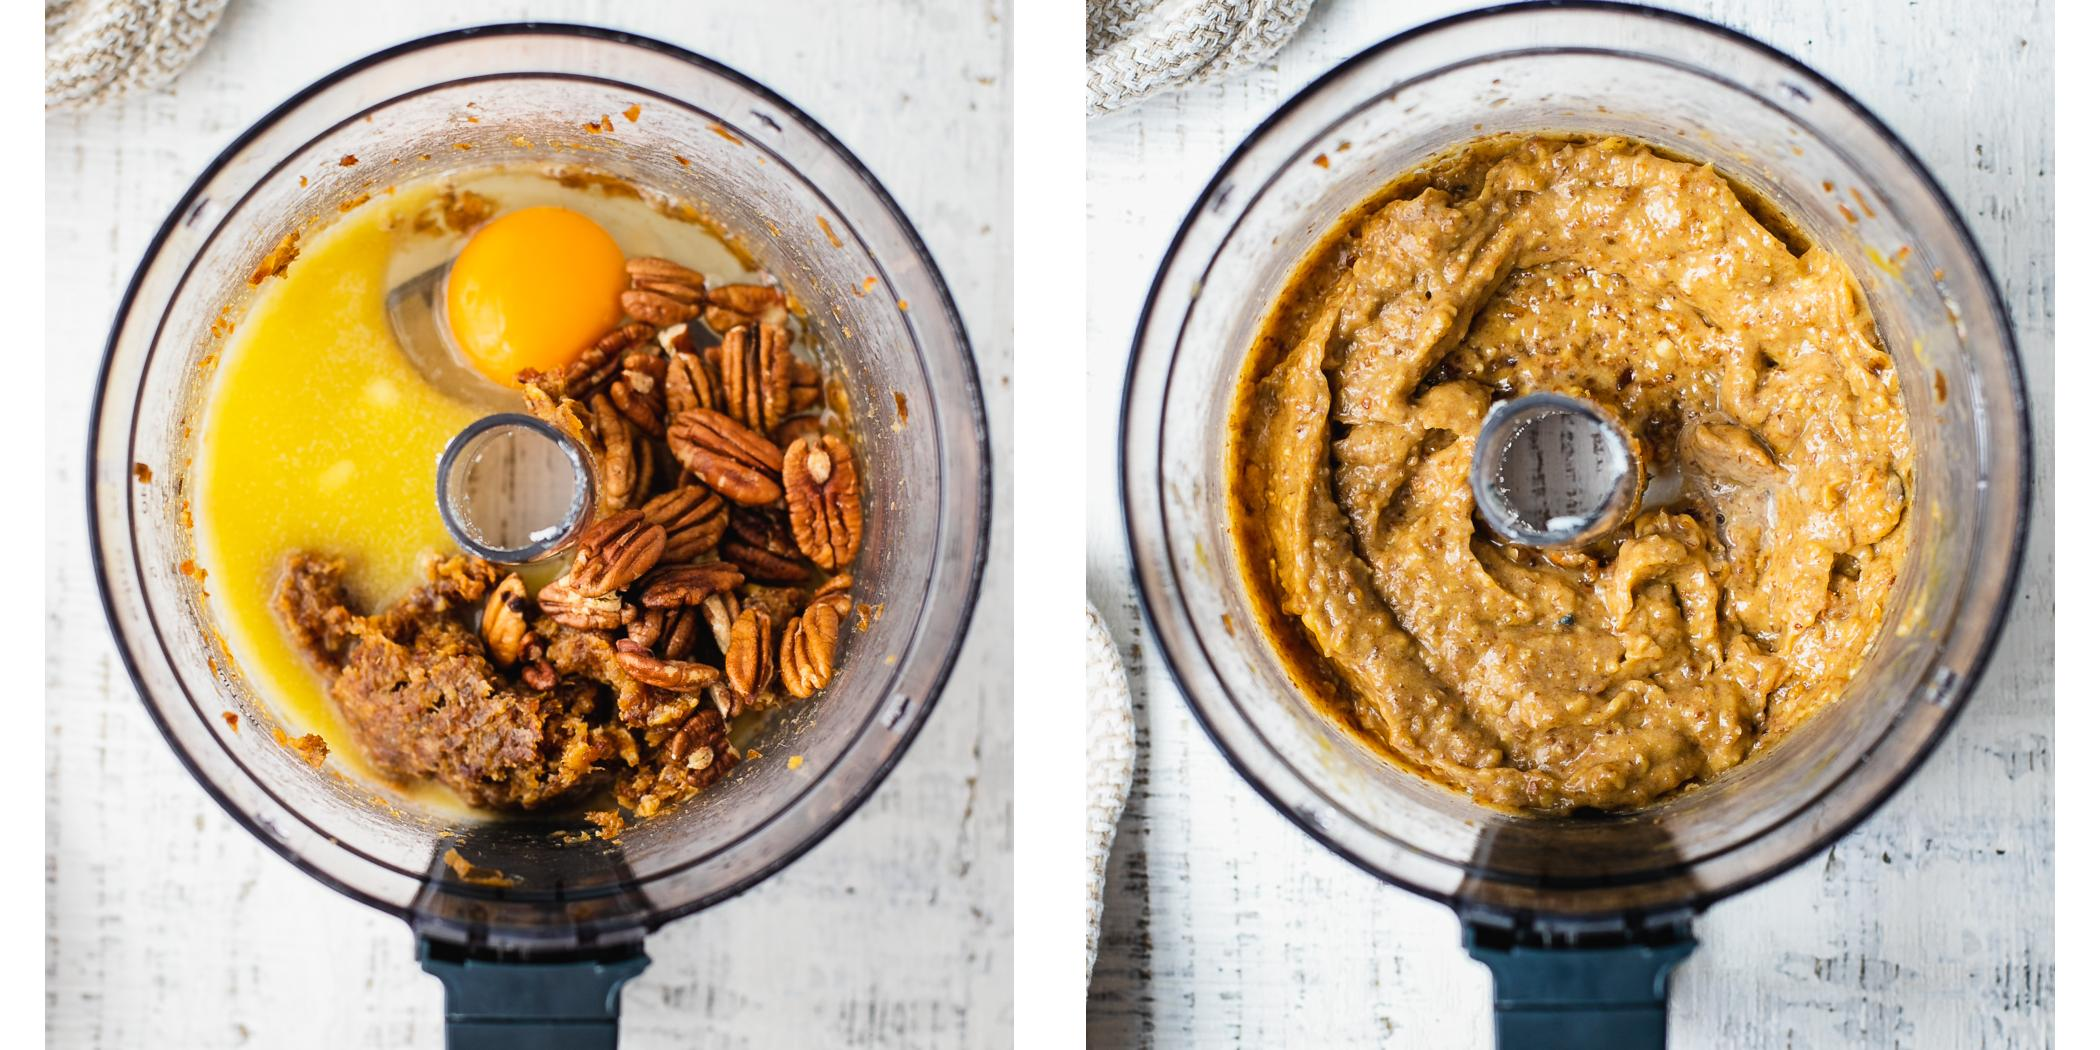 Instruction on how to make caramel pecan pie in a blender.